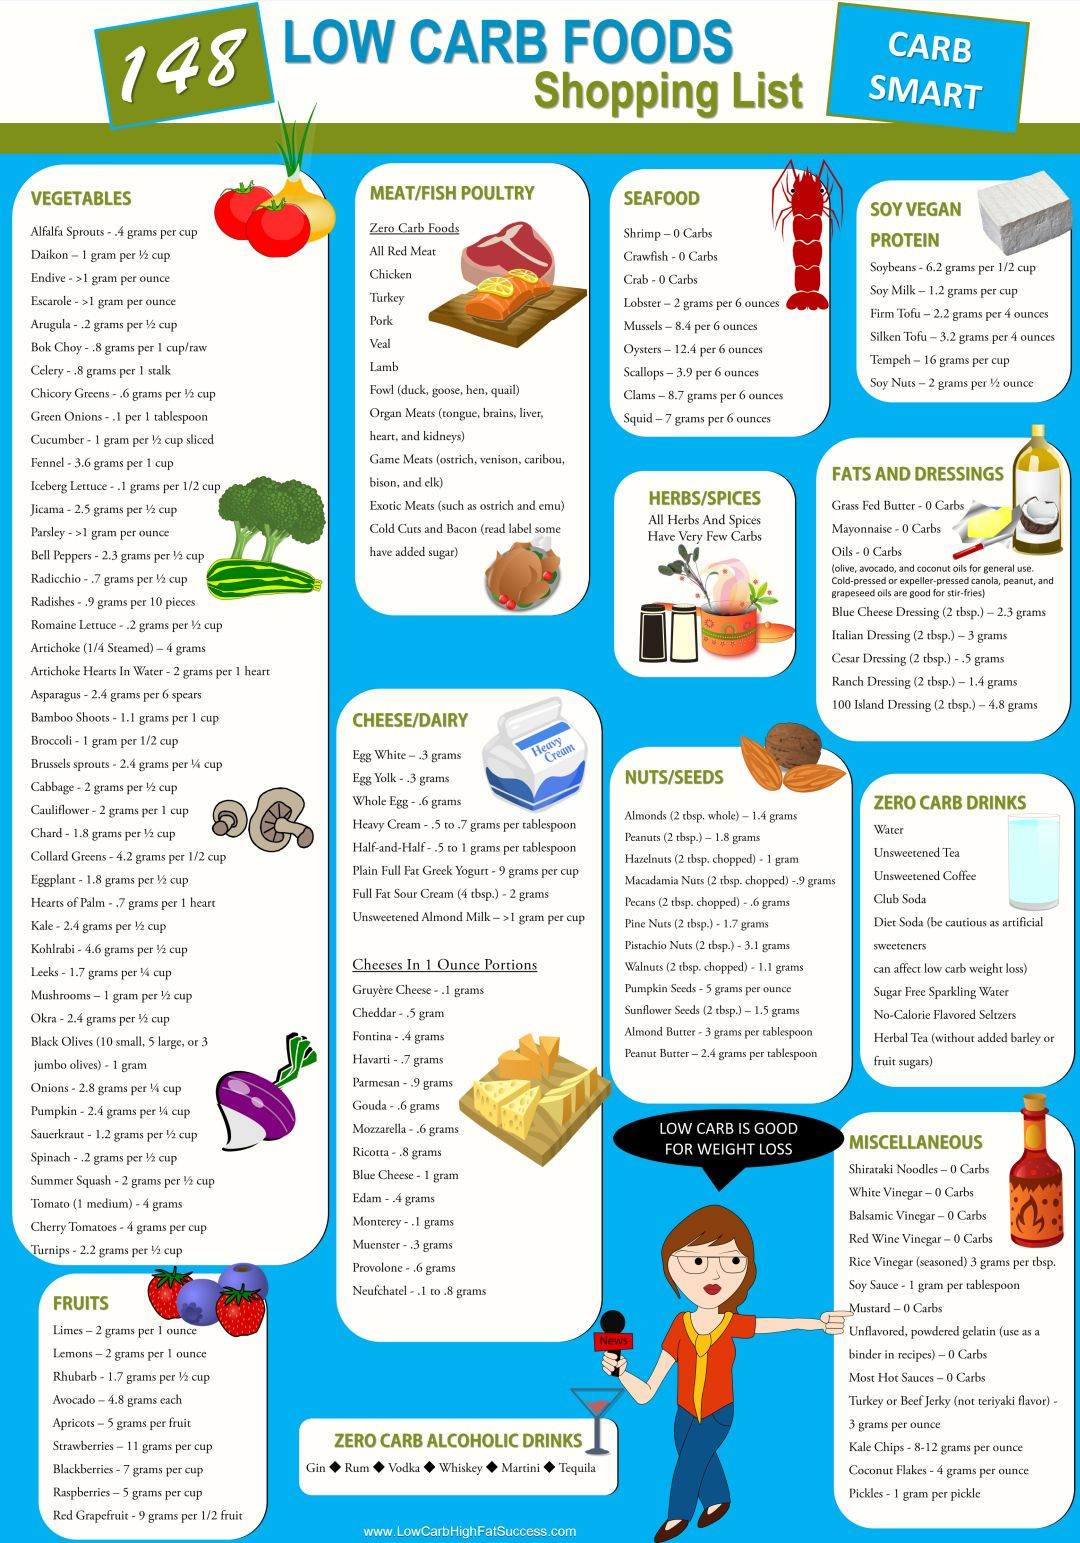 Carbohydrates Food List Low Carb Diets  148 Low Carb Foods Shopping List Infographic Low Carb